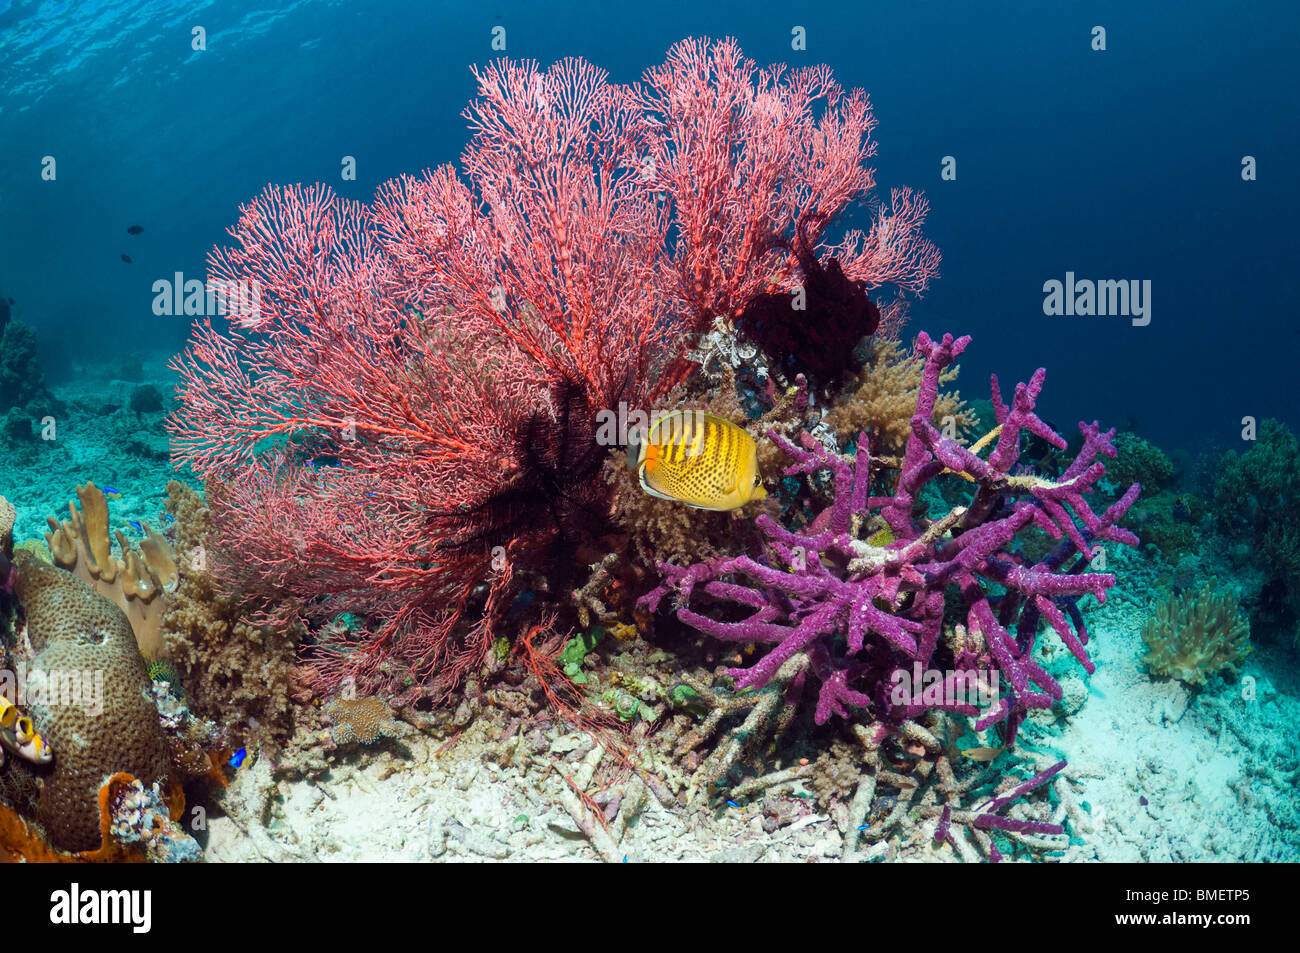 Spot-banded butterflyfish with gorgonian and encrusting purple sponge on coral reef Misool, Raja Empat, West Papua, - Stock Image